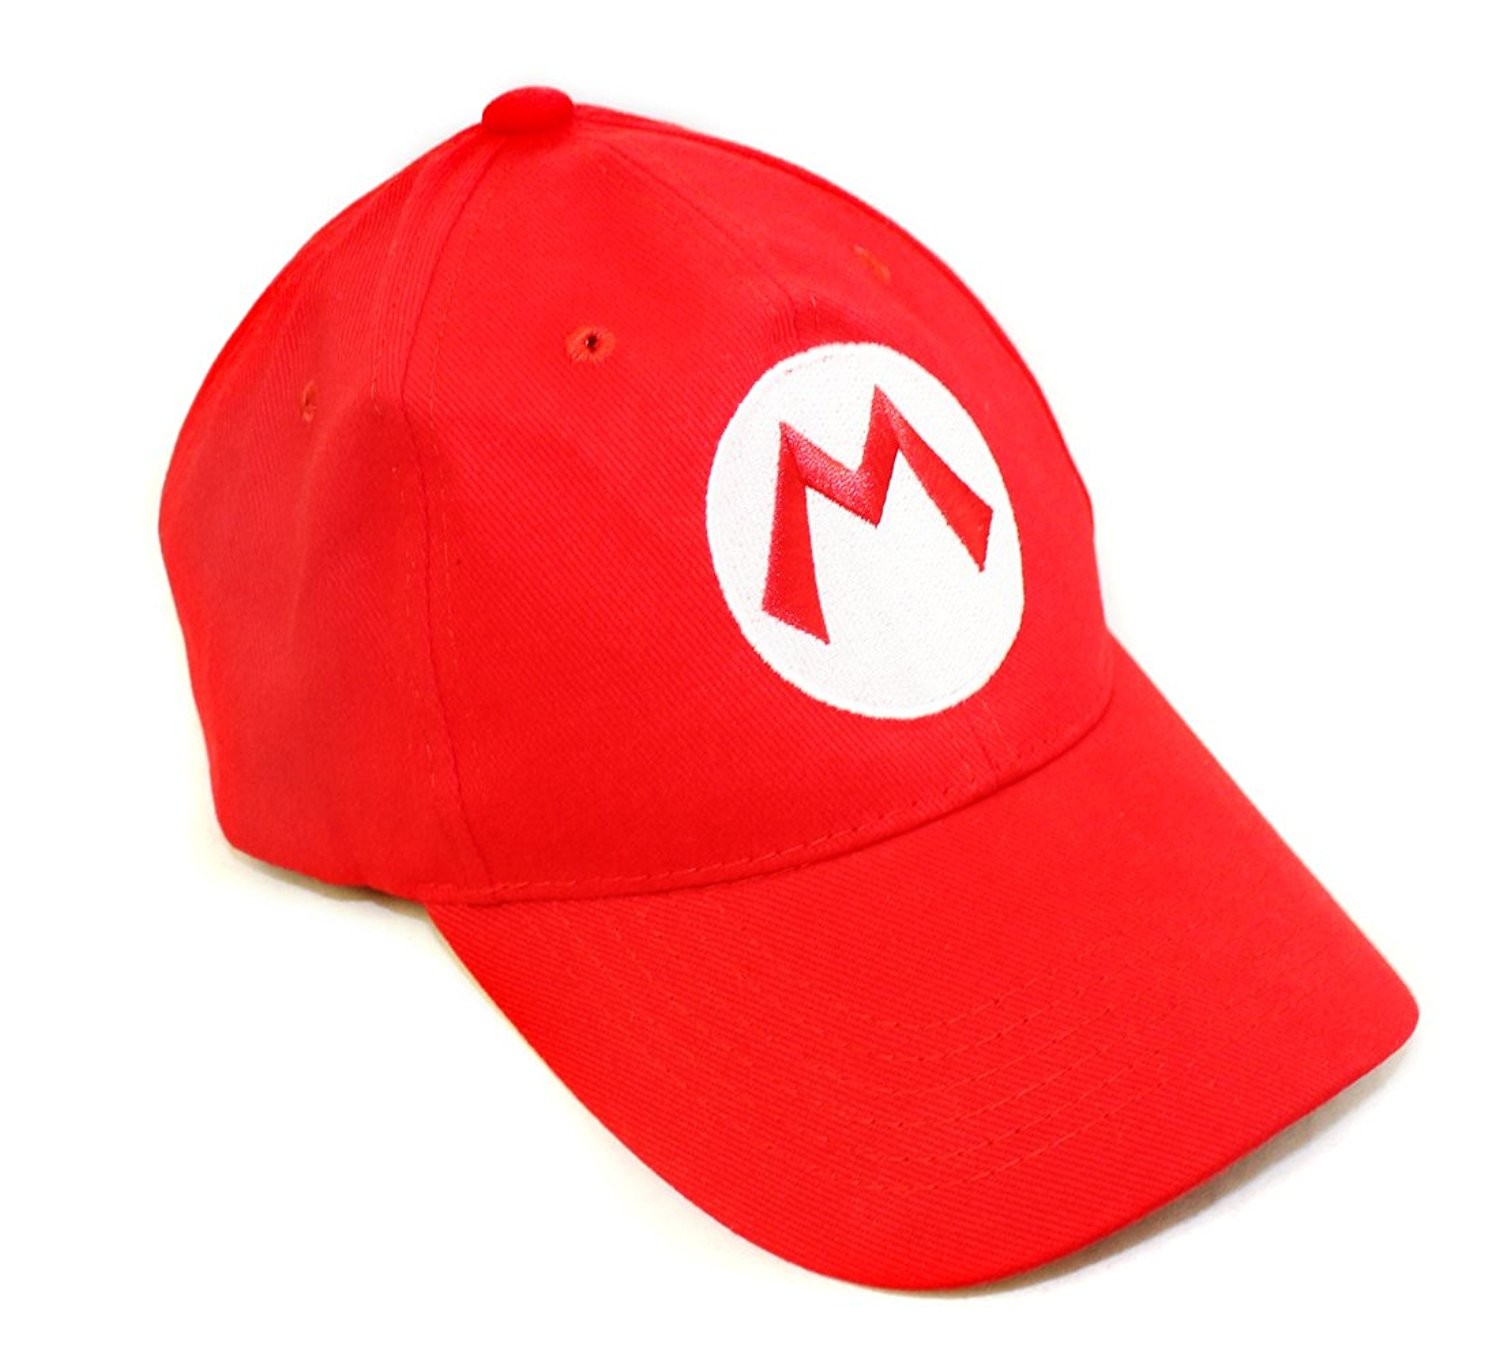 ed04a5b3636 Get Quotations · Super Mario Bros Hat - Red Baseball Cap - One Size Unisex  Cosplay